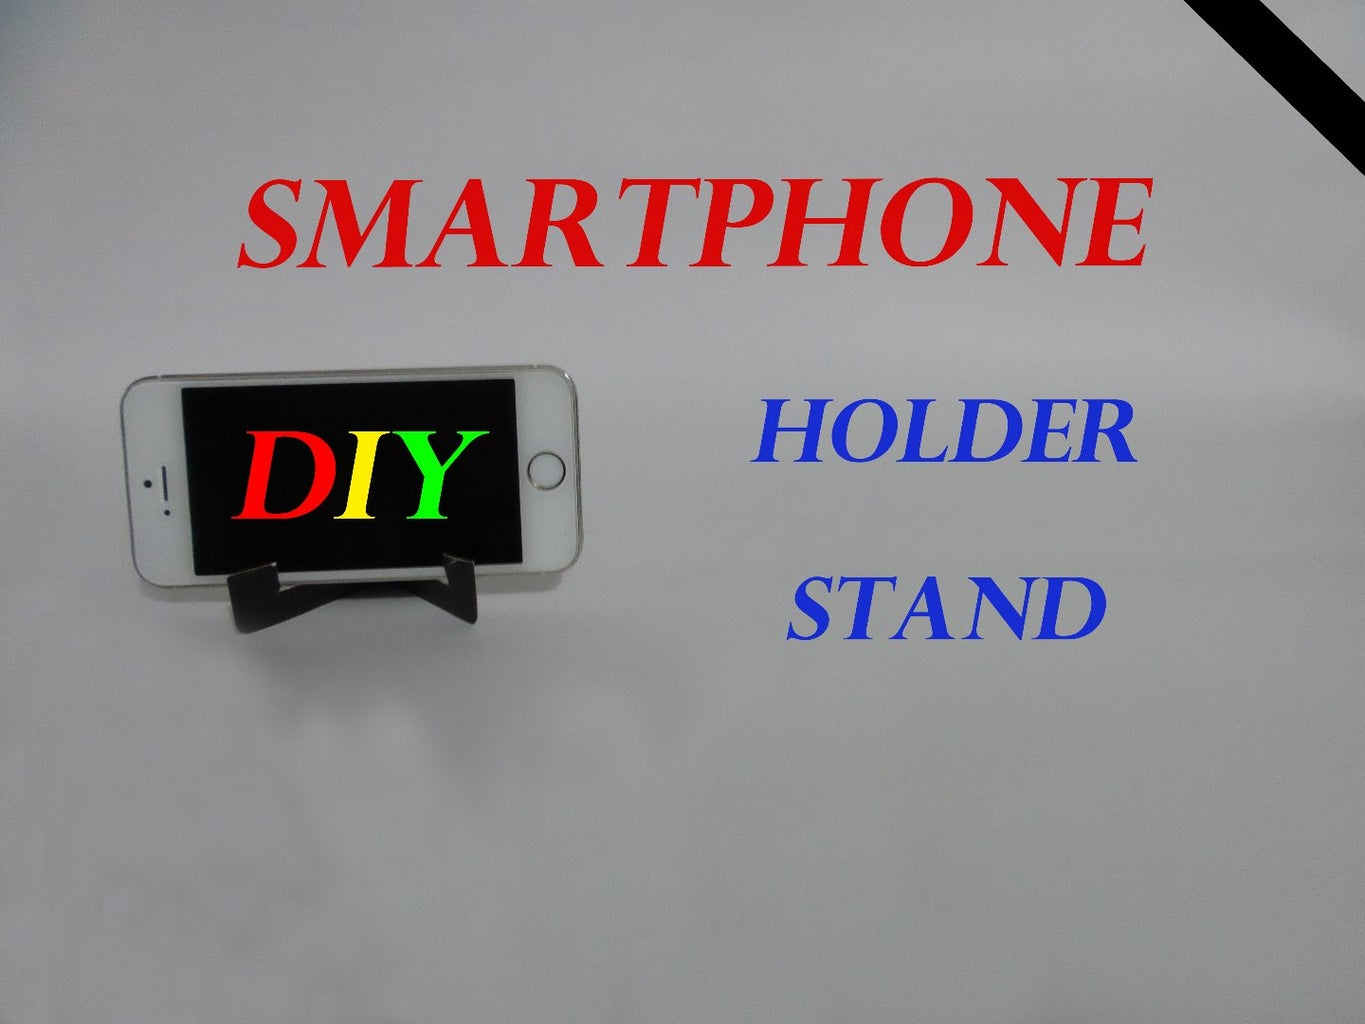 How to Make Smartphone Stand/Holder From Info Card (DIY)